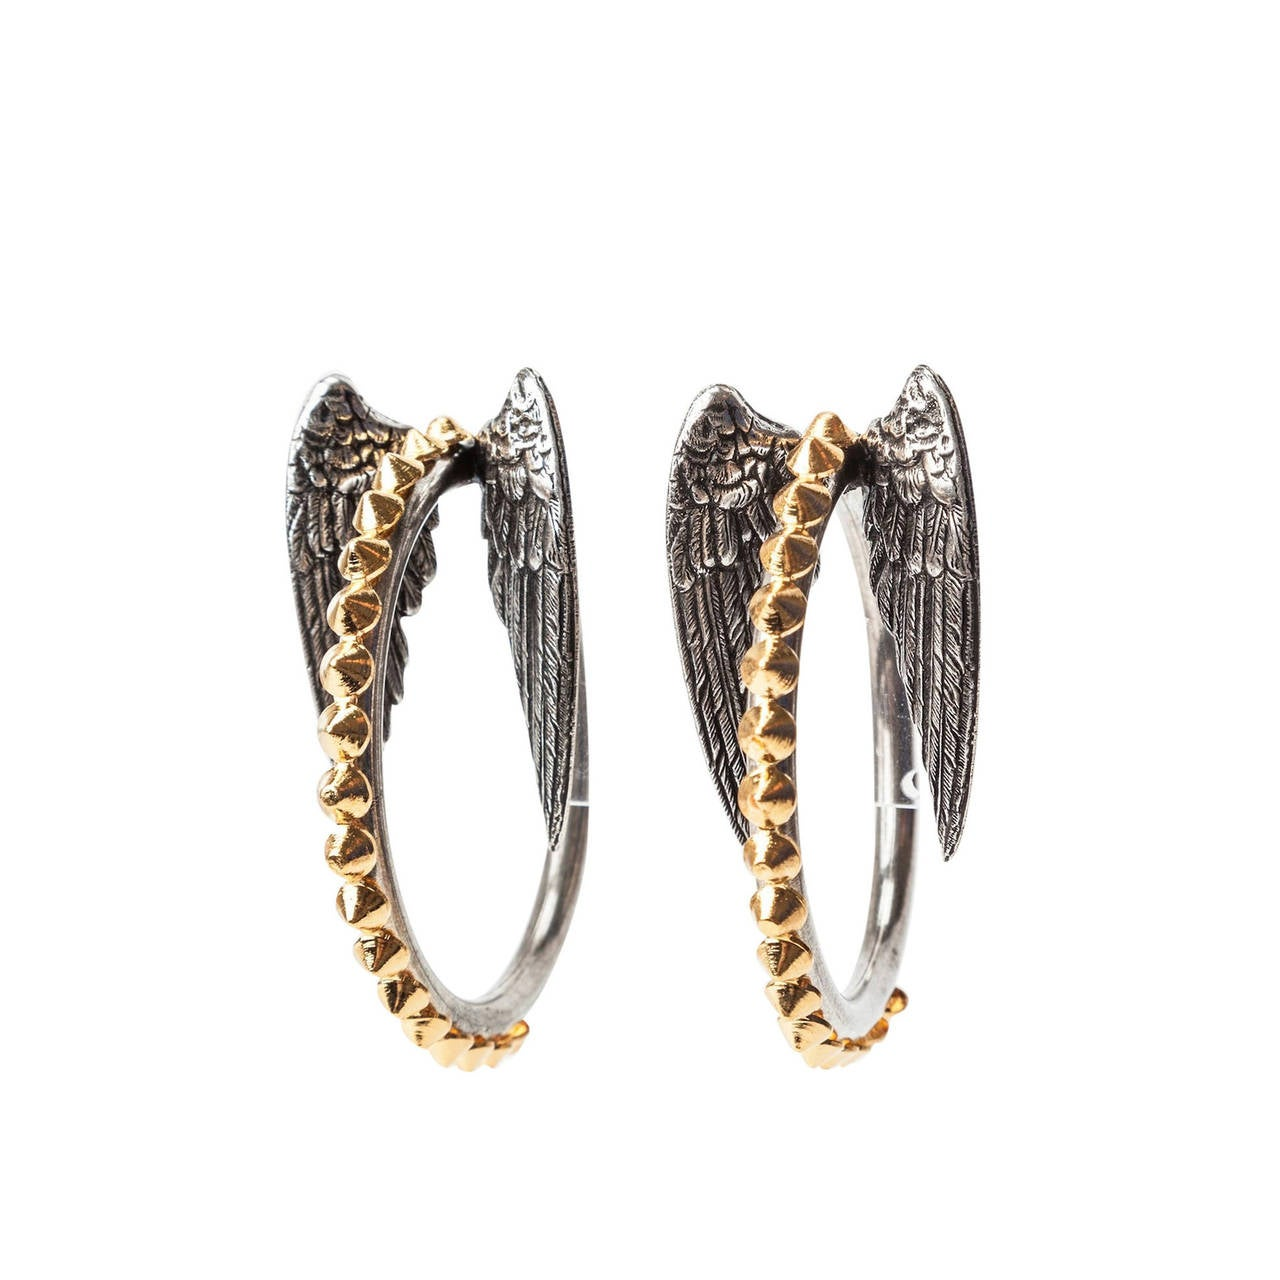 Winged Hoops, MWLC For Sale